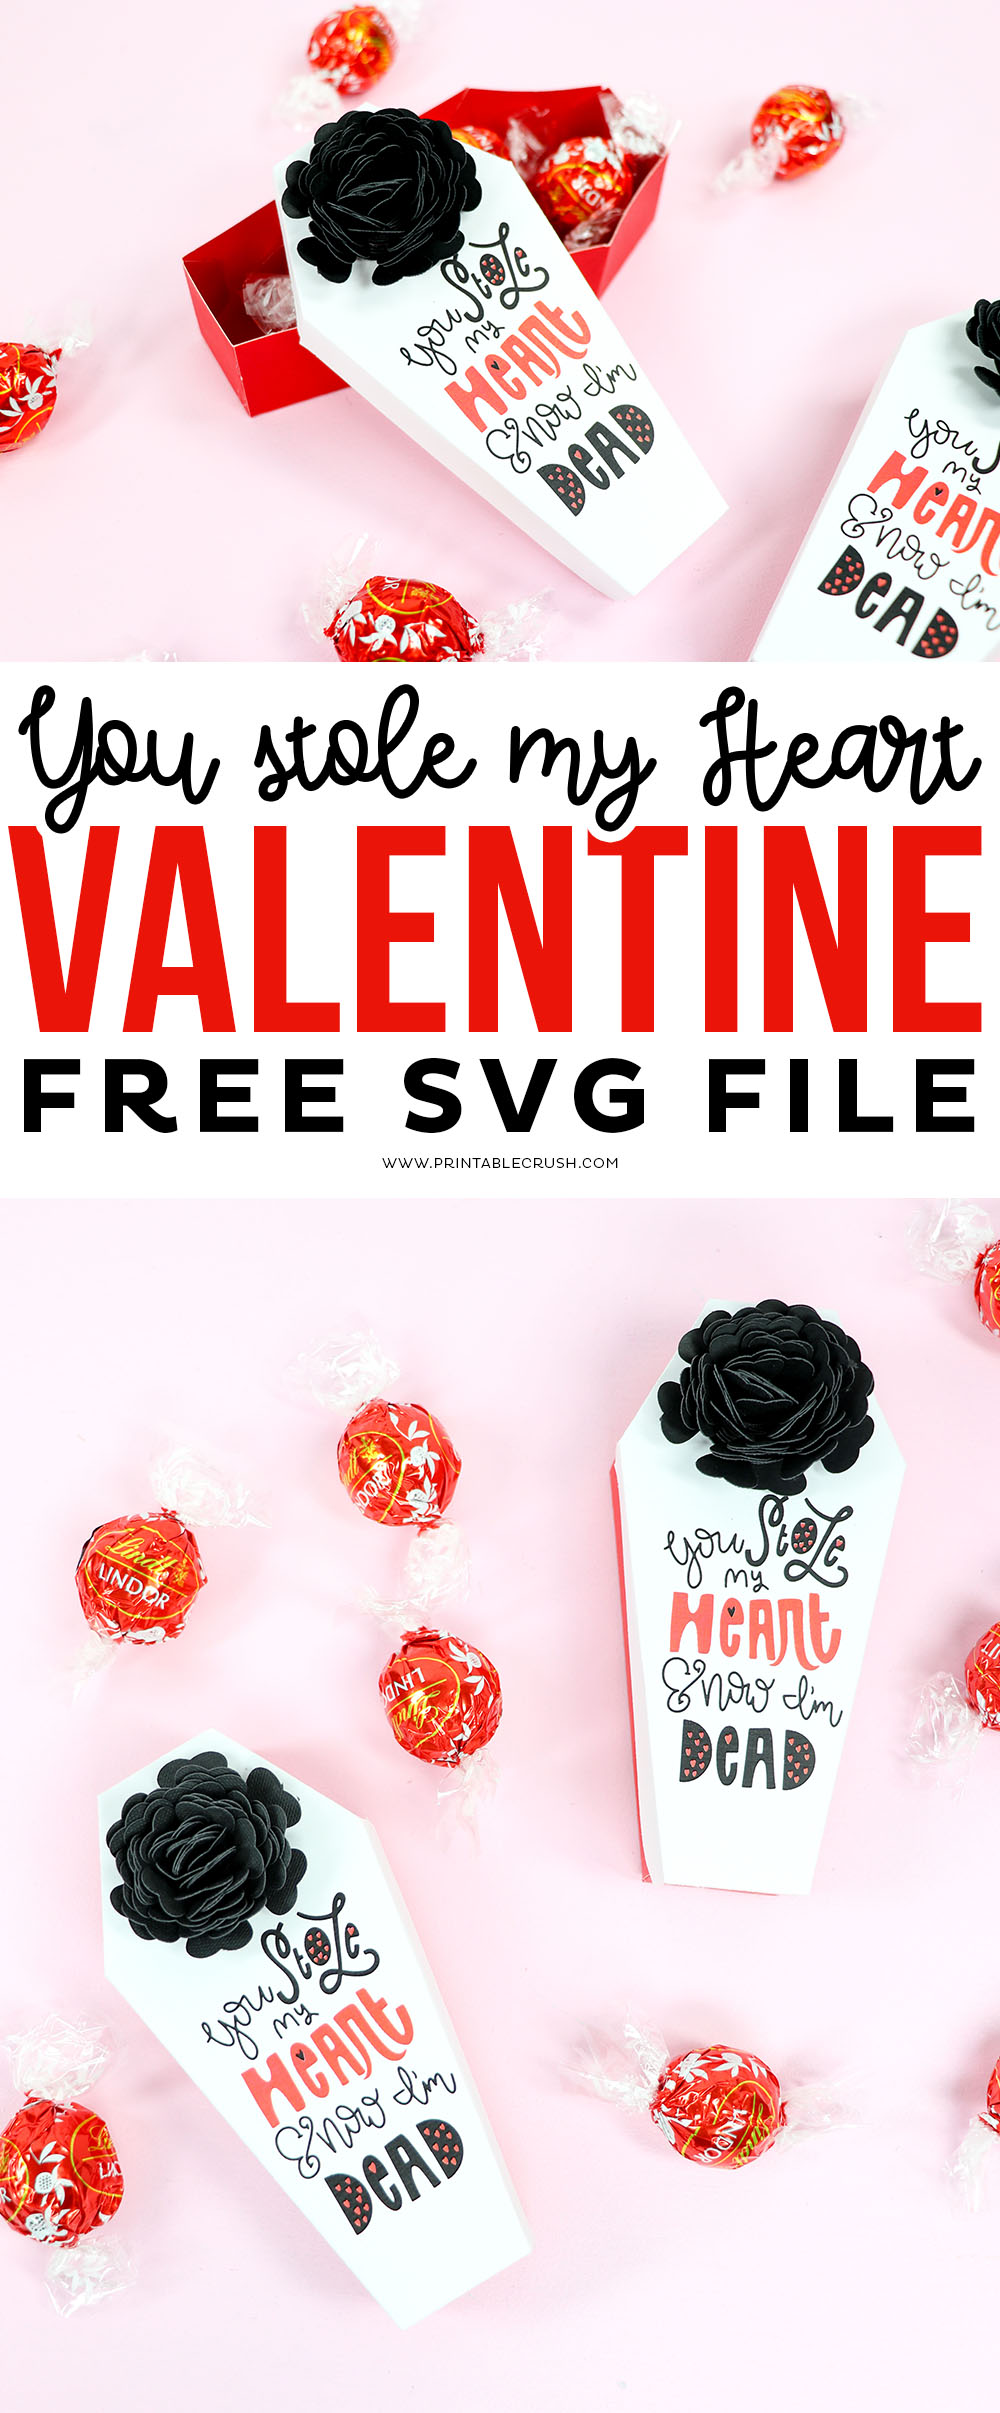 You Stole My Heart and Now I'm Dead Valentine Free SVG File #freesvgfile #valentinesday #valentinecraft #svgfiles #cricutcrafts